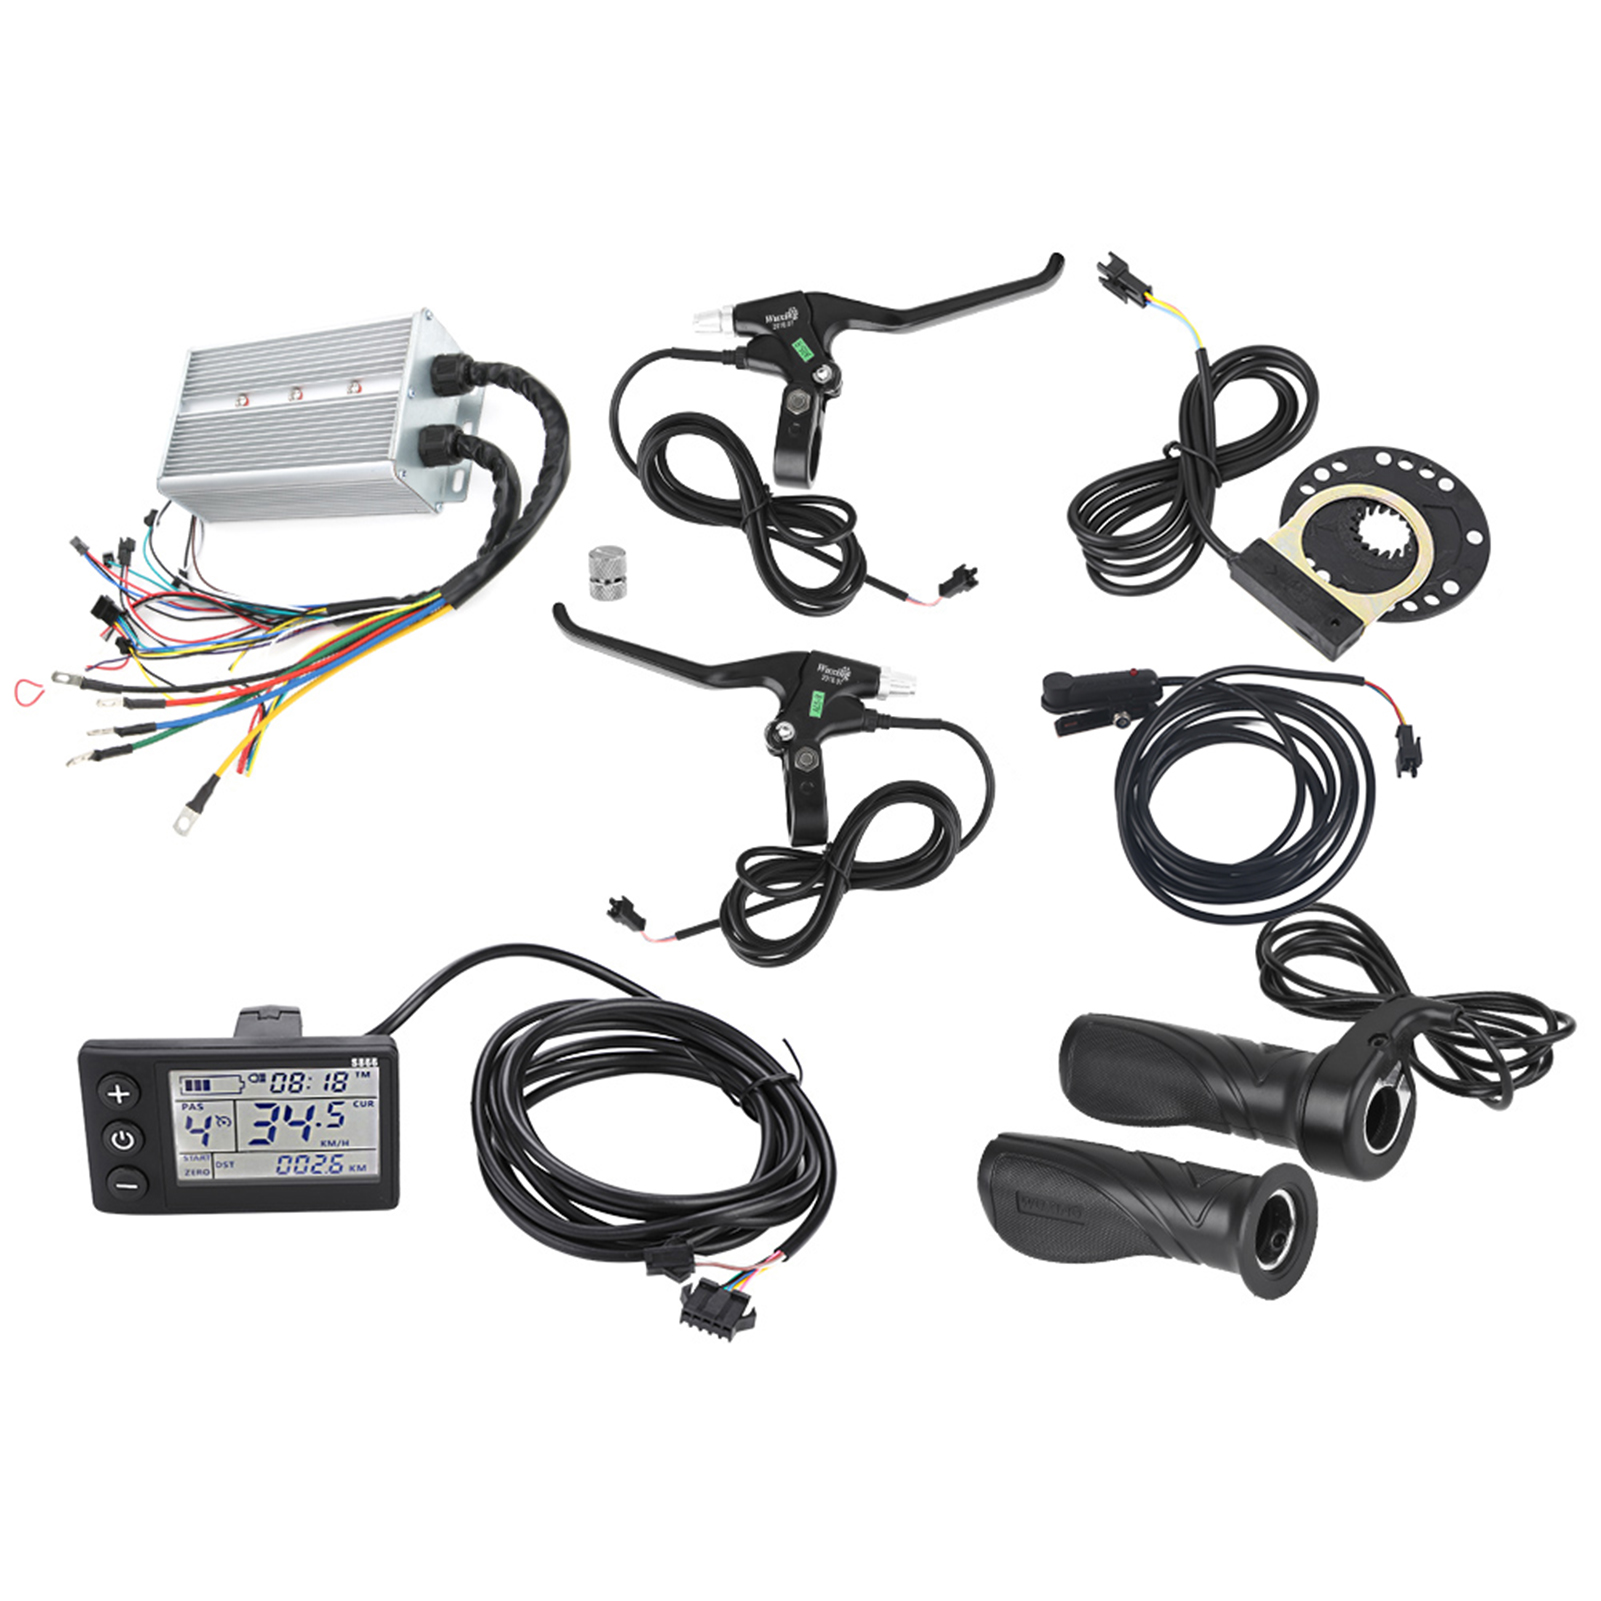 24V-36V-48V-1500W-Brushless-Motor-E-bike-Speed-Controller-LCD-Panel-Kit-Scooter